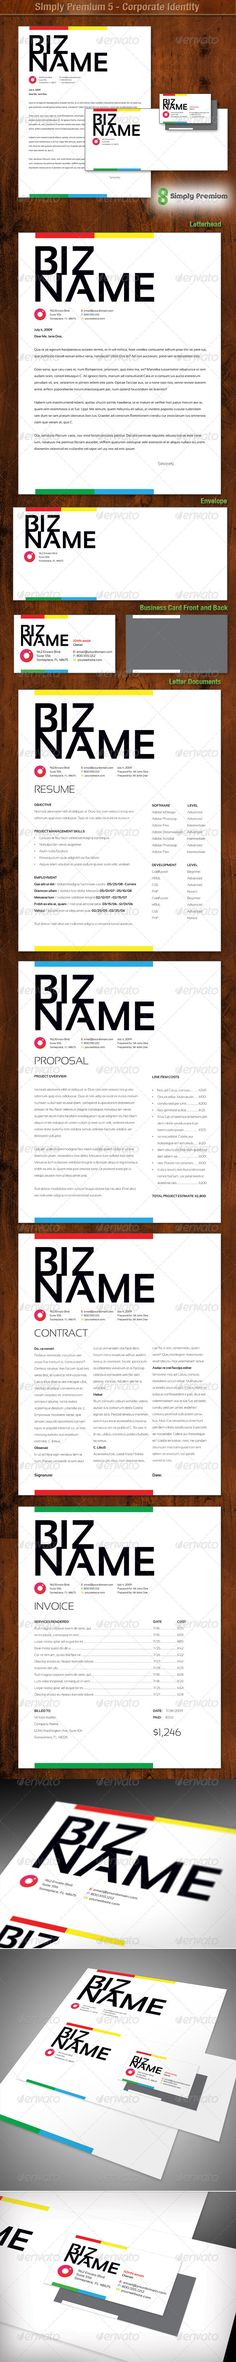 Clean Creative Service Contract for your Business Business - service contract